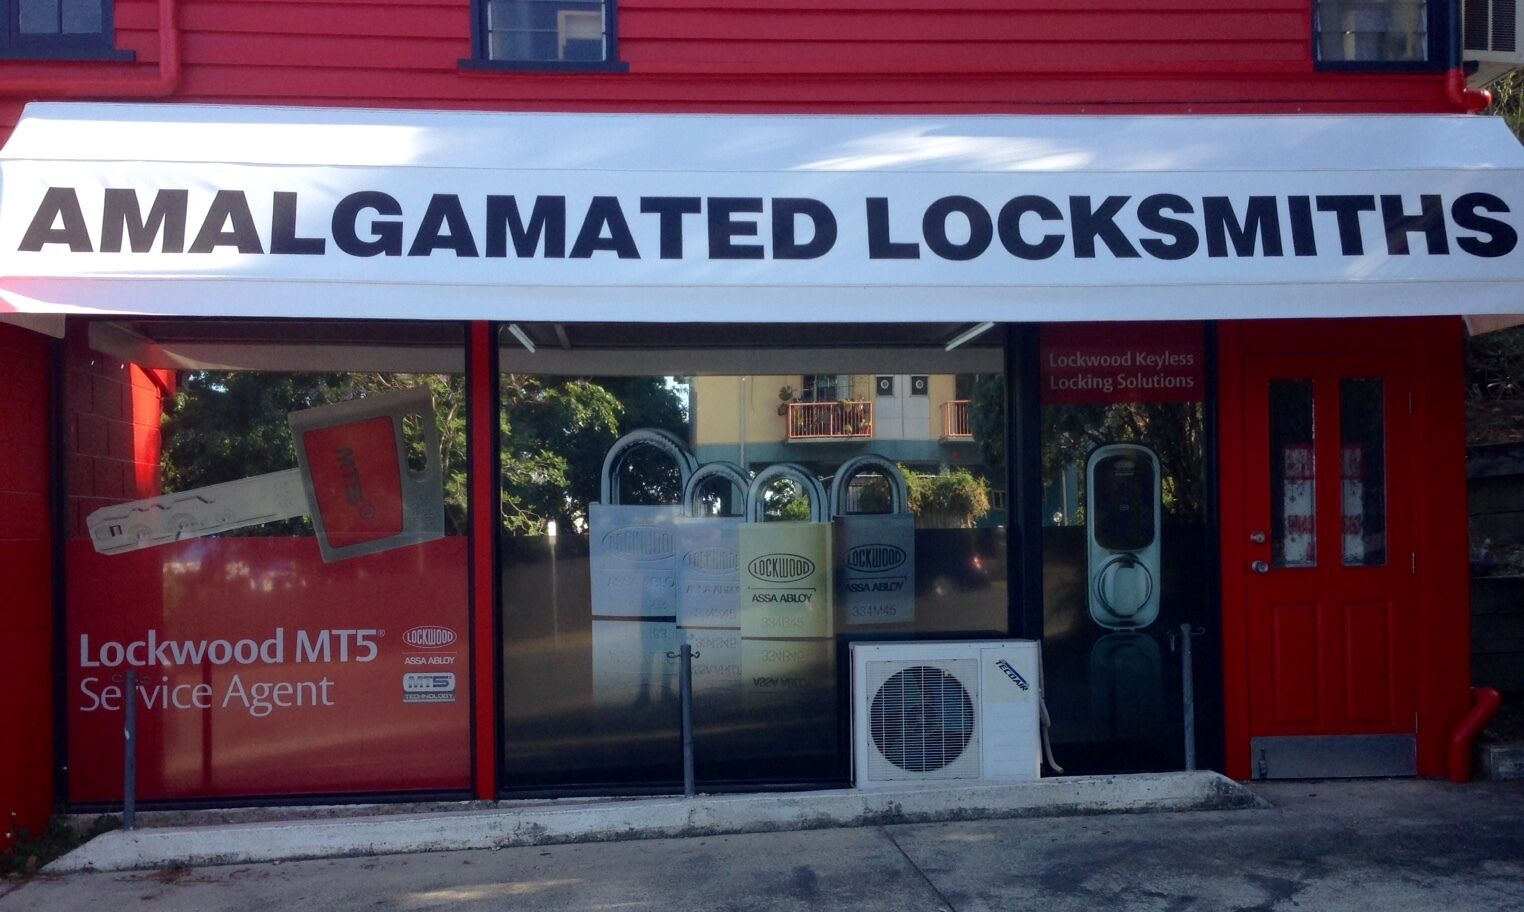 Amalgamated Locksmiths